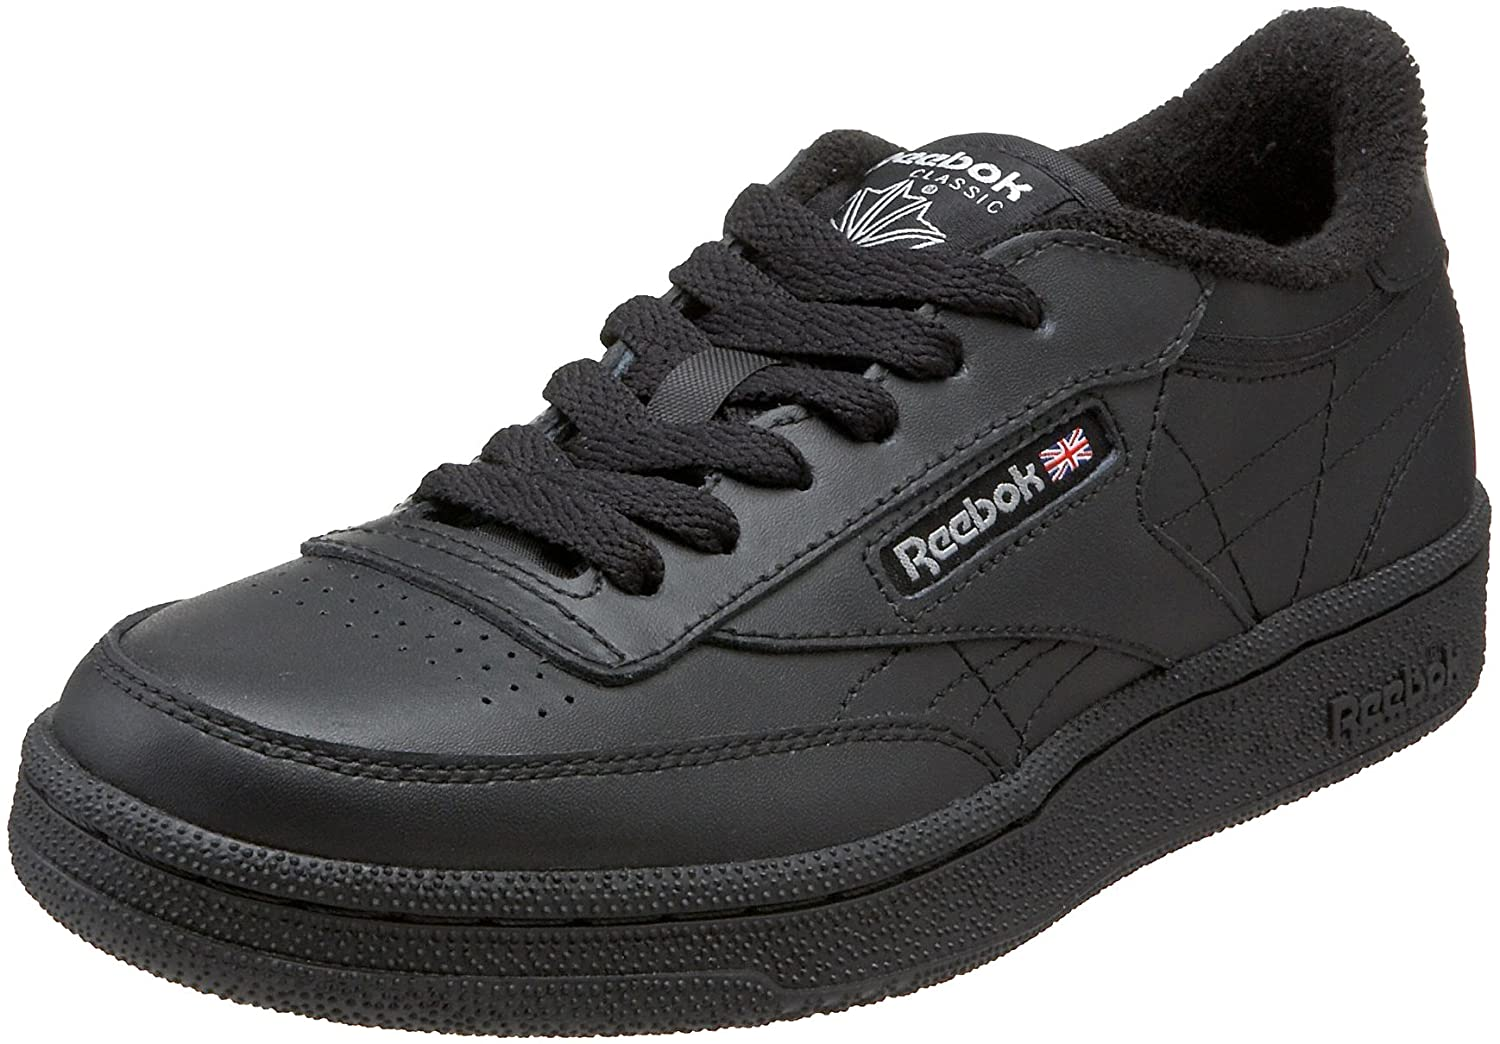 Reebok Club C Black Black Youths Trainers Size 6 UK  Amazon.co.uk  Shoes    Bags 683684094